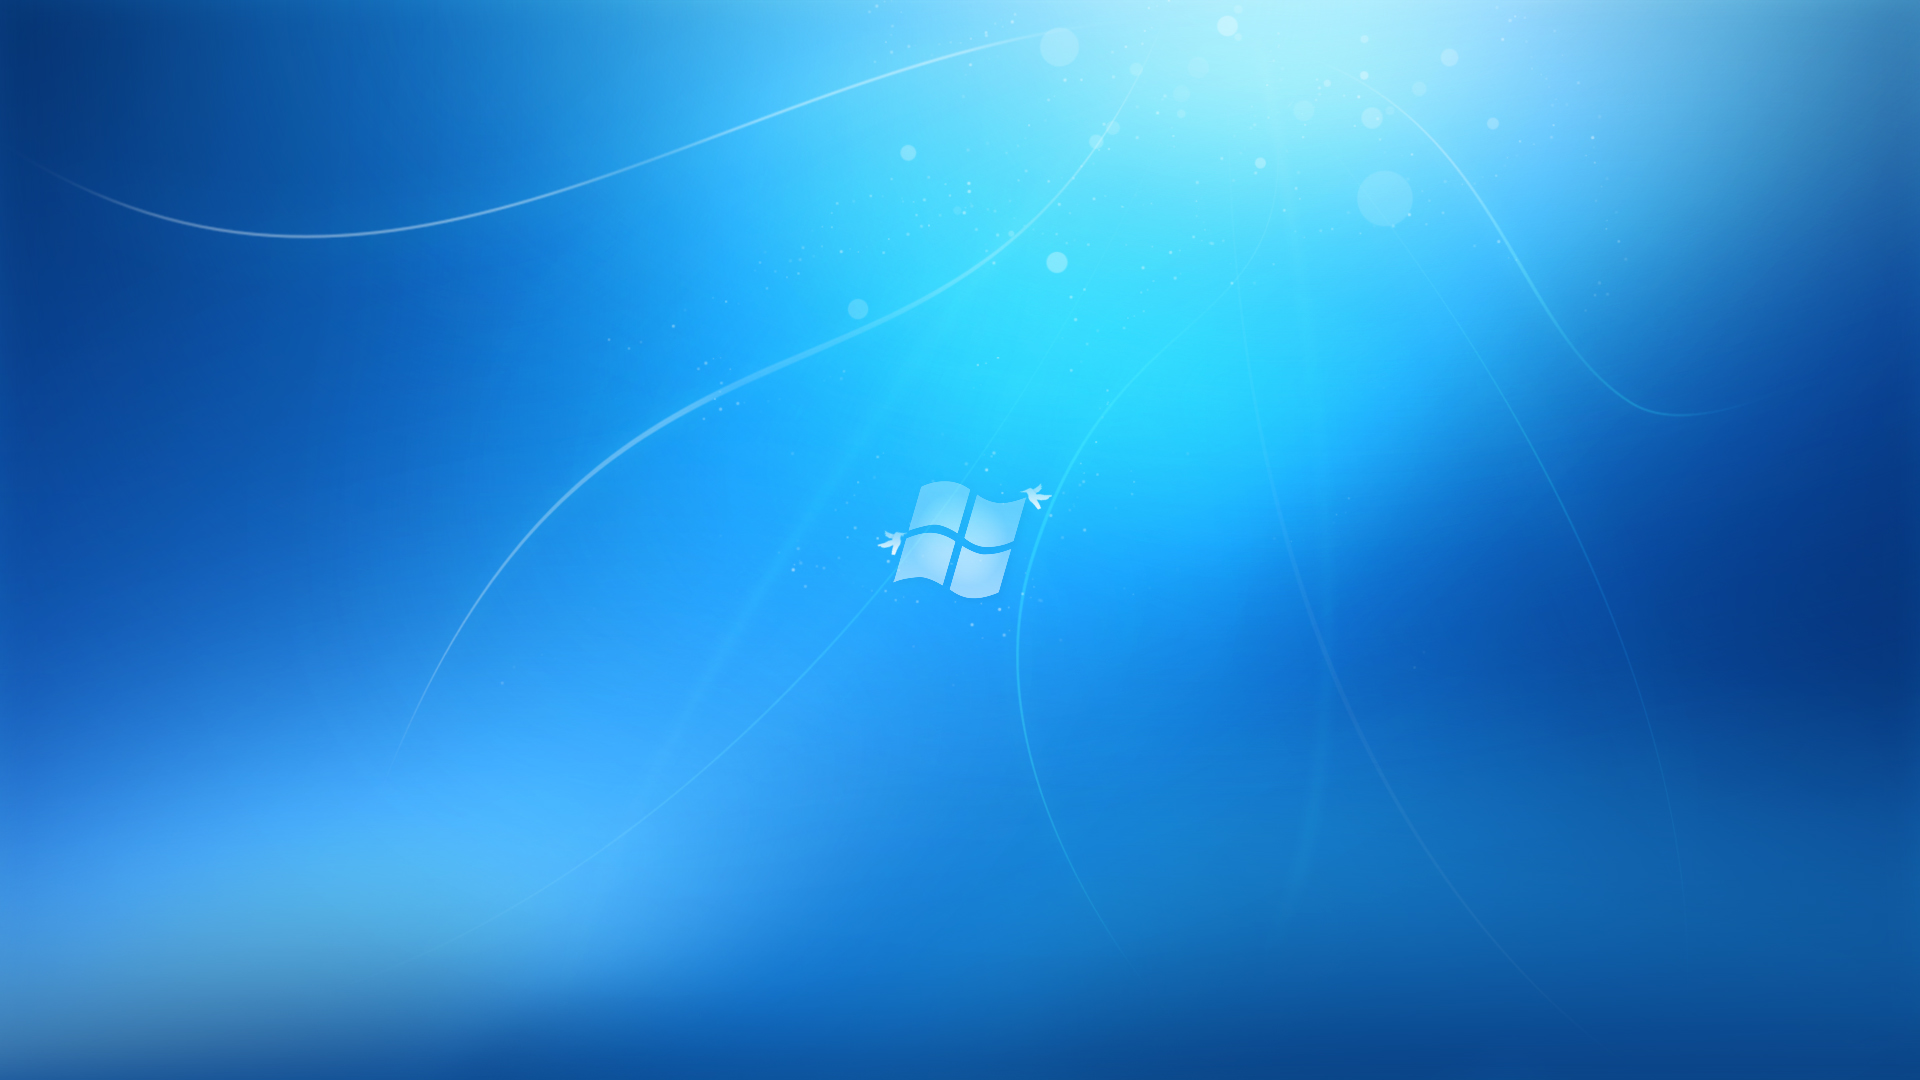 Windows 7 Blue 1080p HD Wallpapers HD Wallpapers 1920x1080